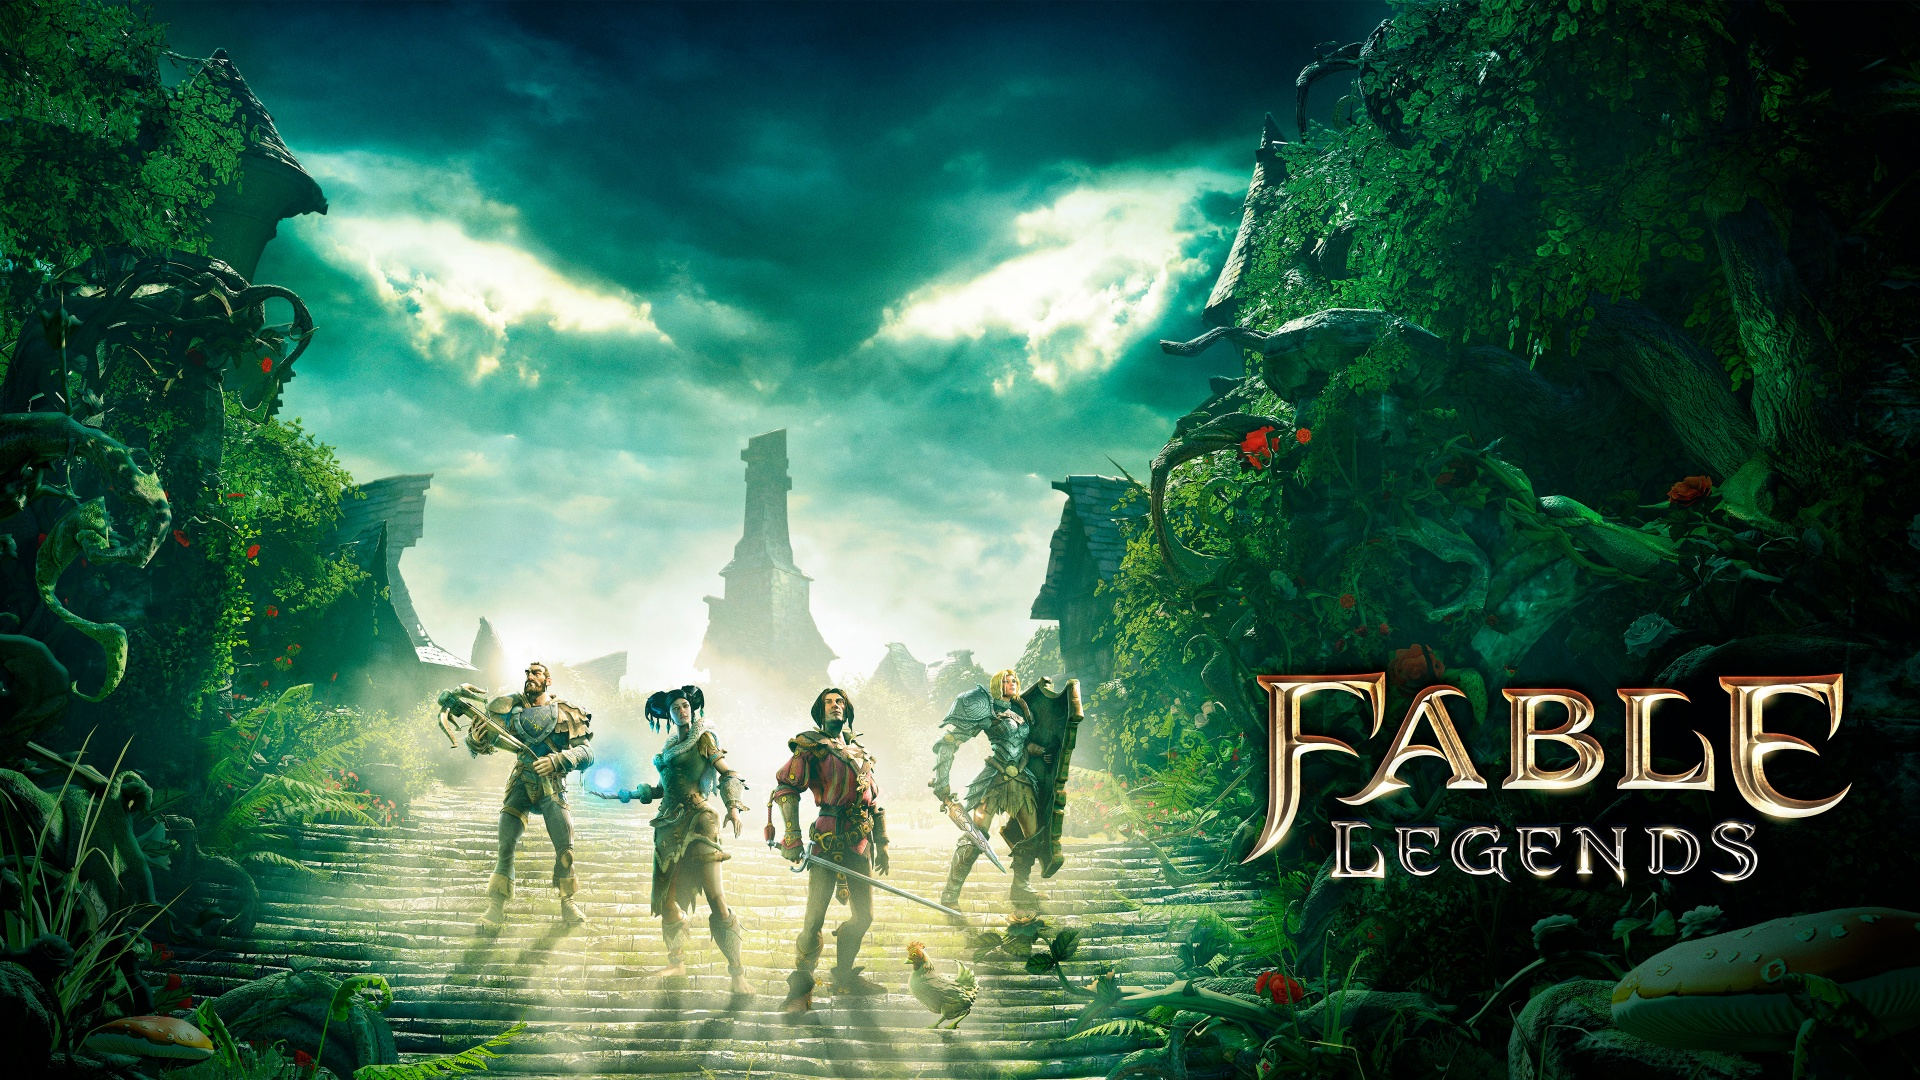 Fable Legends Game Wallpaper-1920x1080